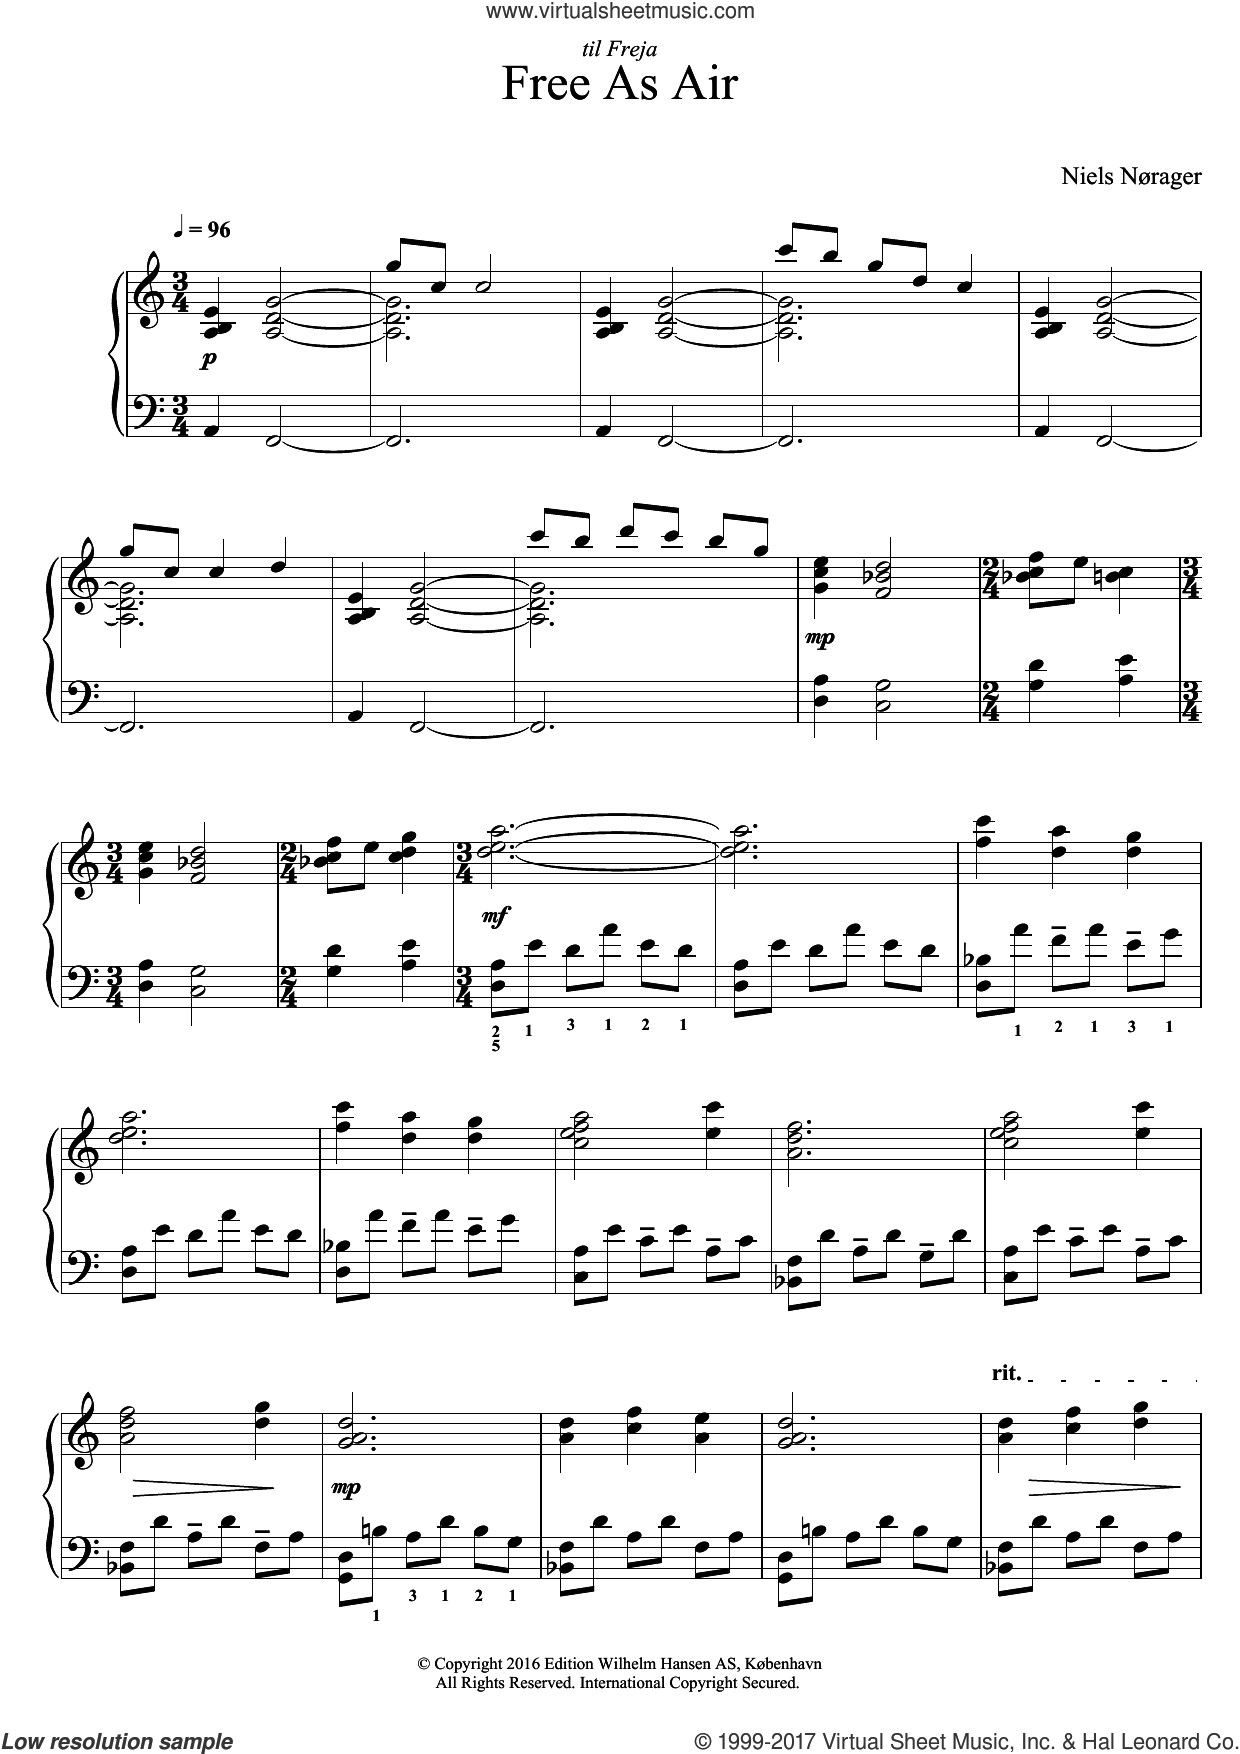 Free As Air sheet music for piano solo by Niels Norager, classical score, intermediate skill level